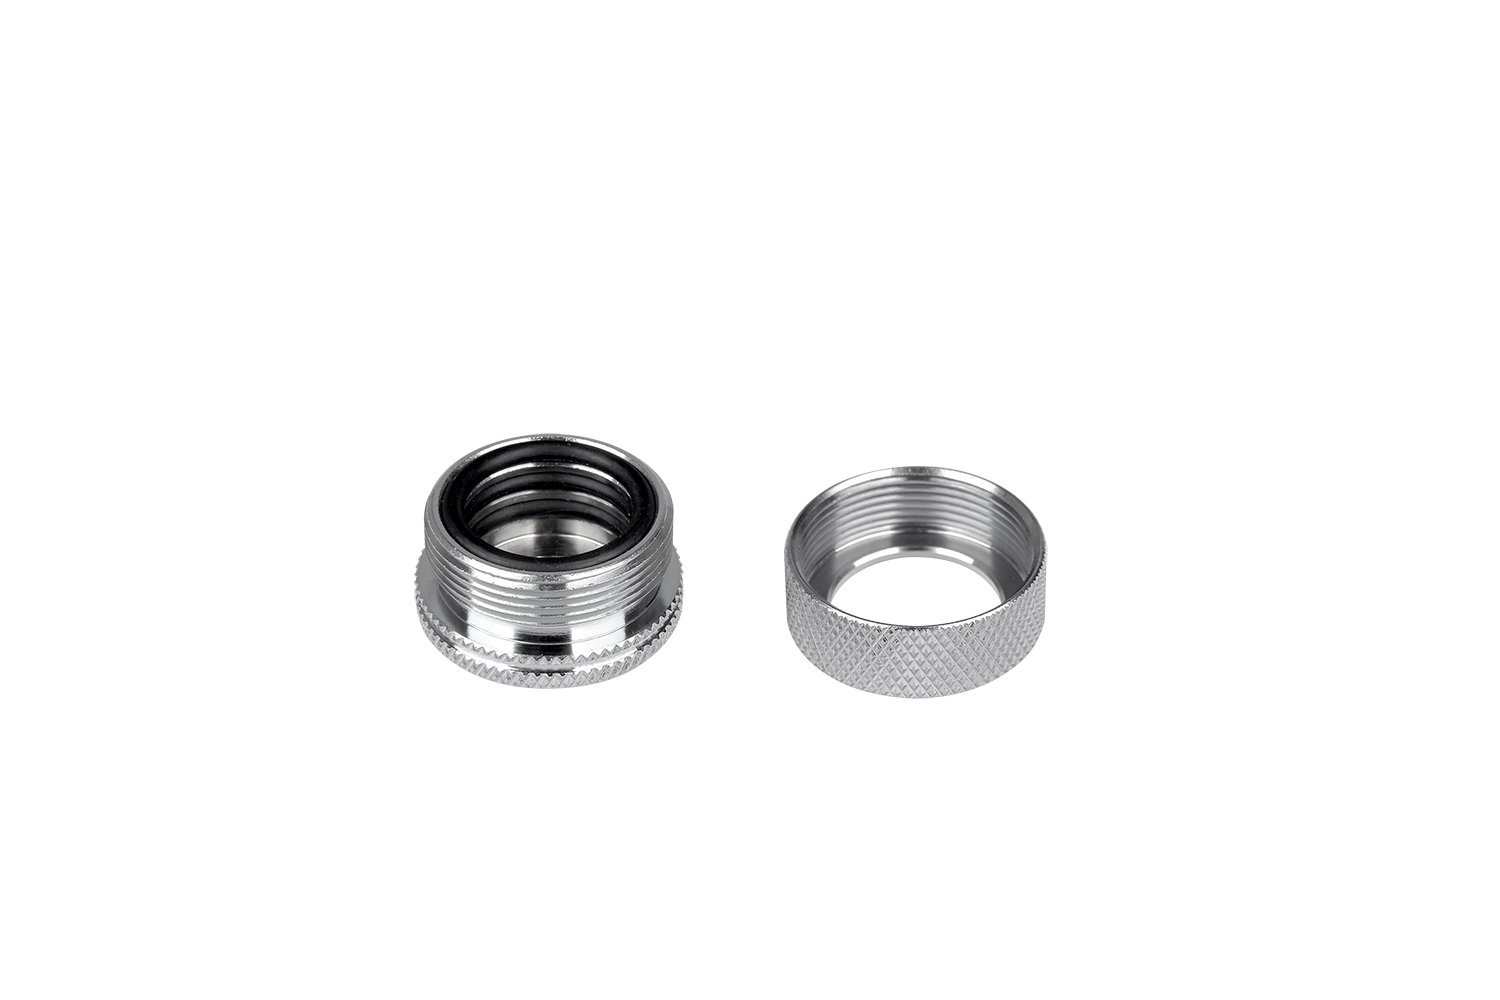 Thermaltake Pacific DIY LCS G1/4'' PETG Tube 16mm (5/8'') OD Compression Fitting CL-W092-CA00SL-A Silver